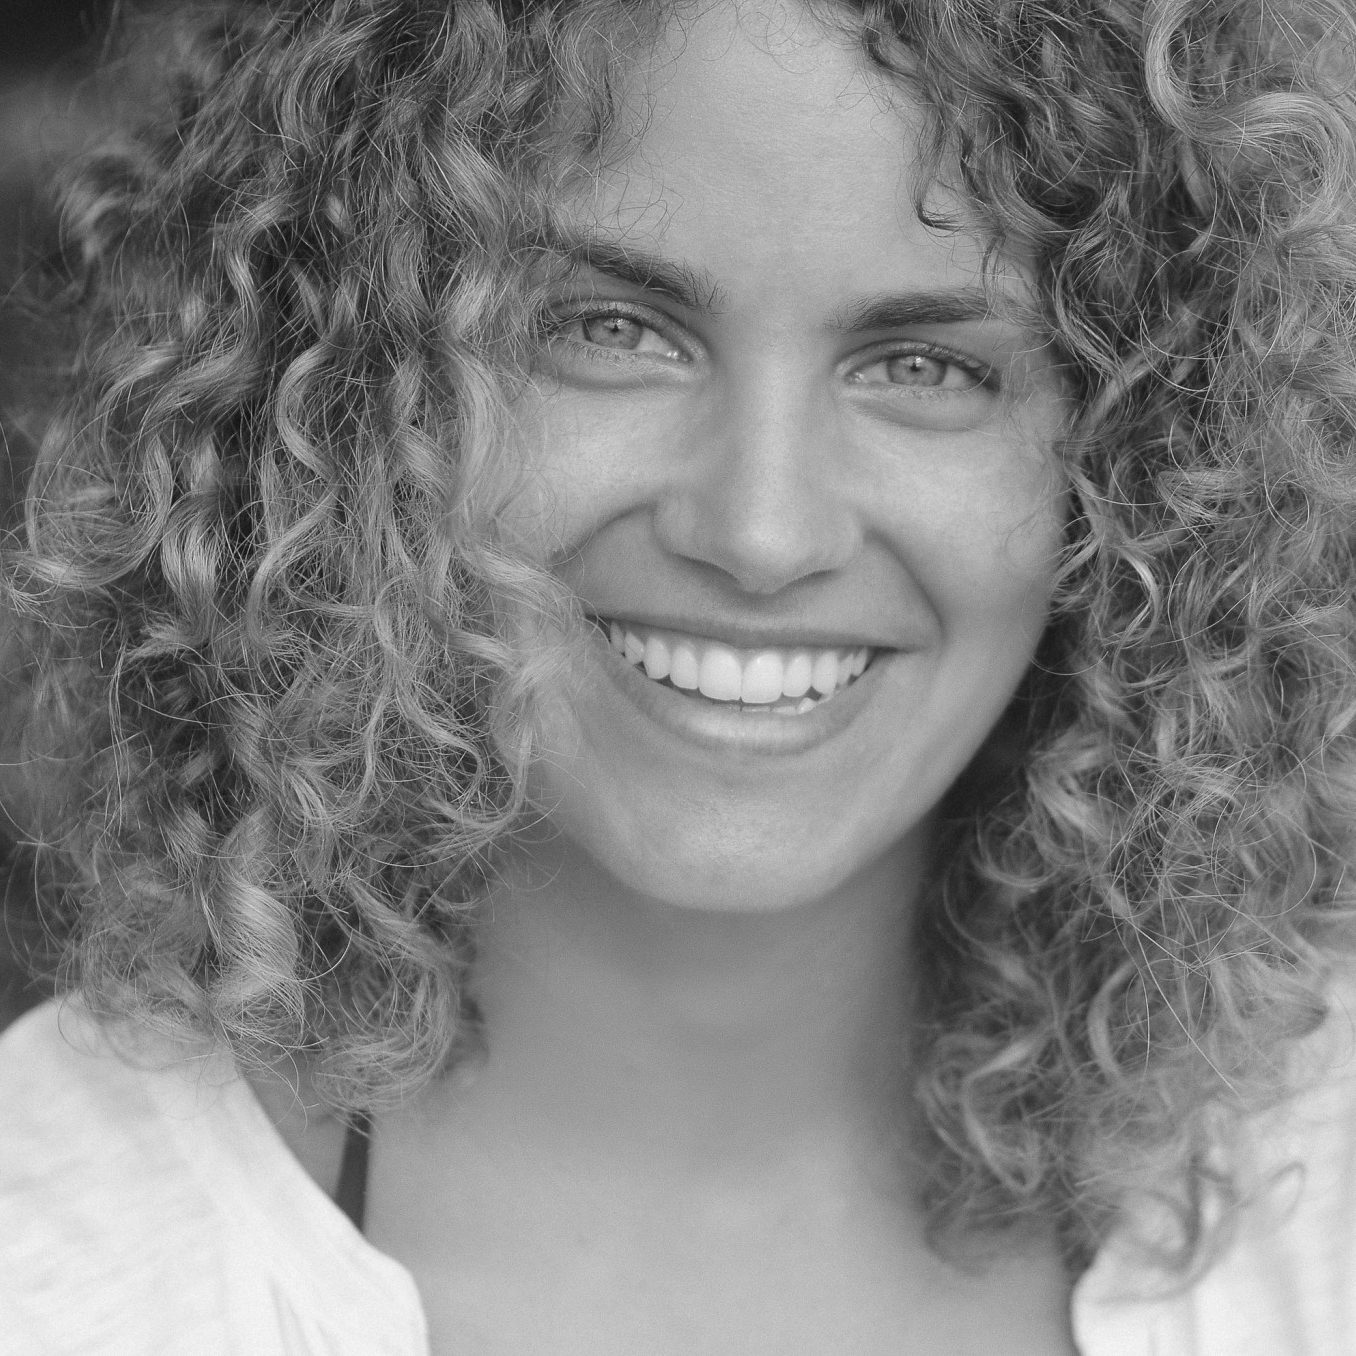 Picture of Eve, our co-founder and British Mandarin-speaking guide